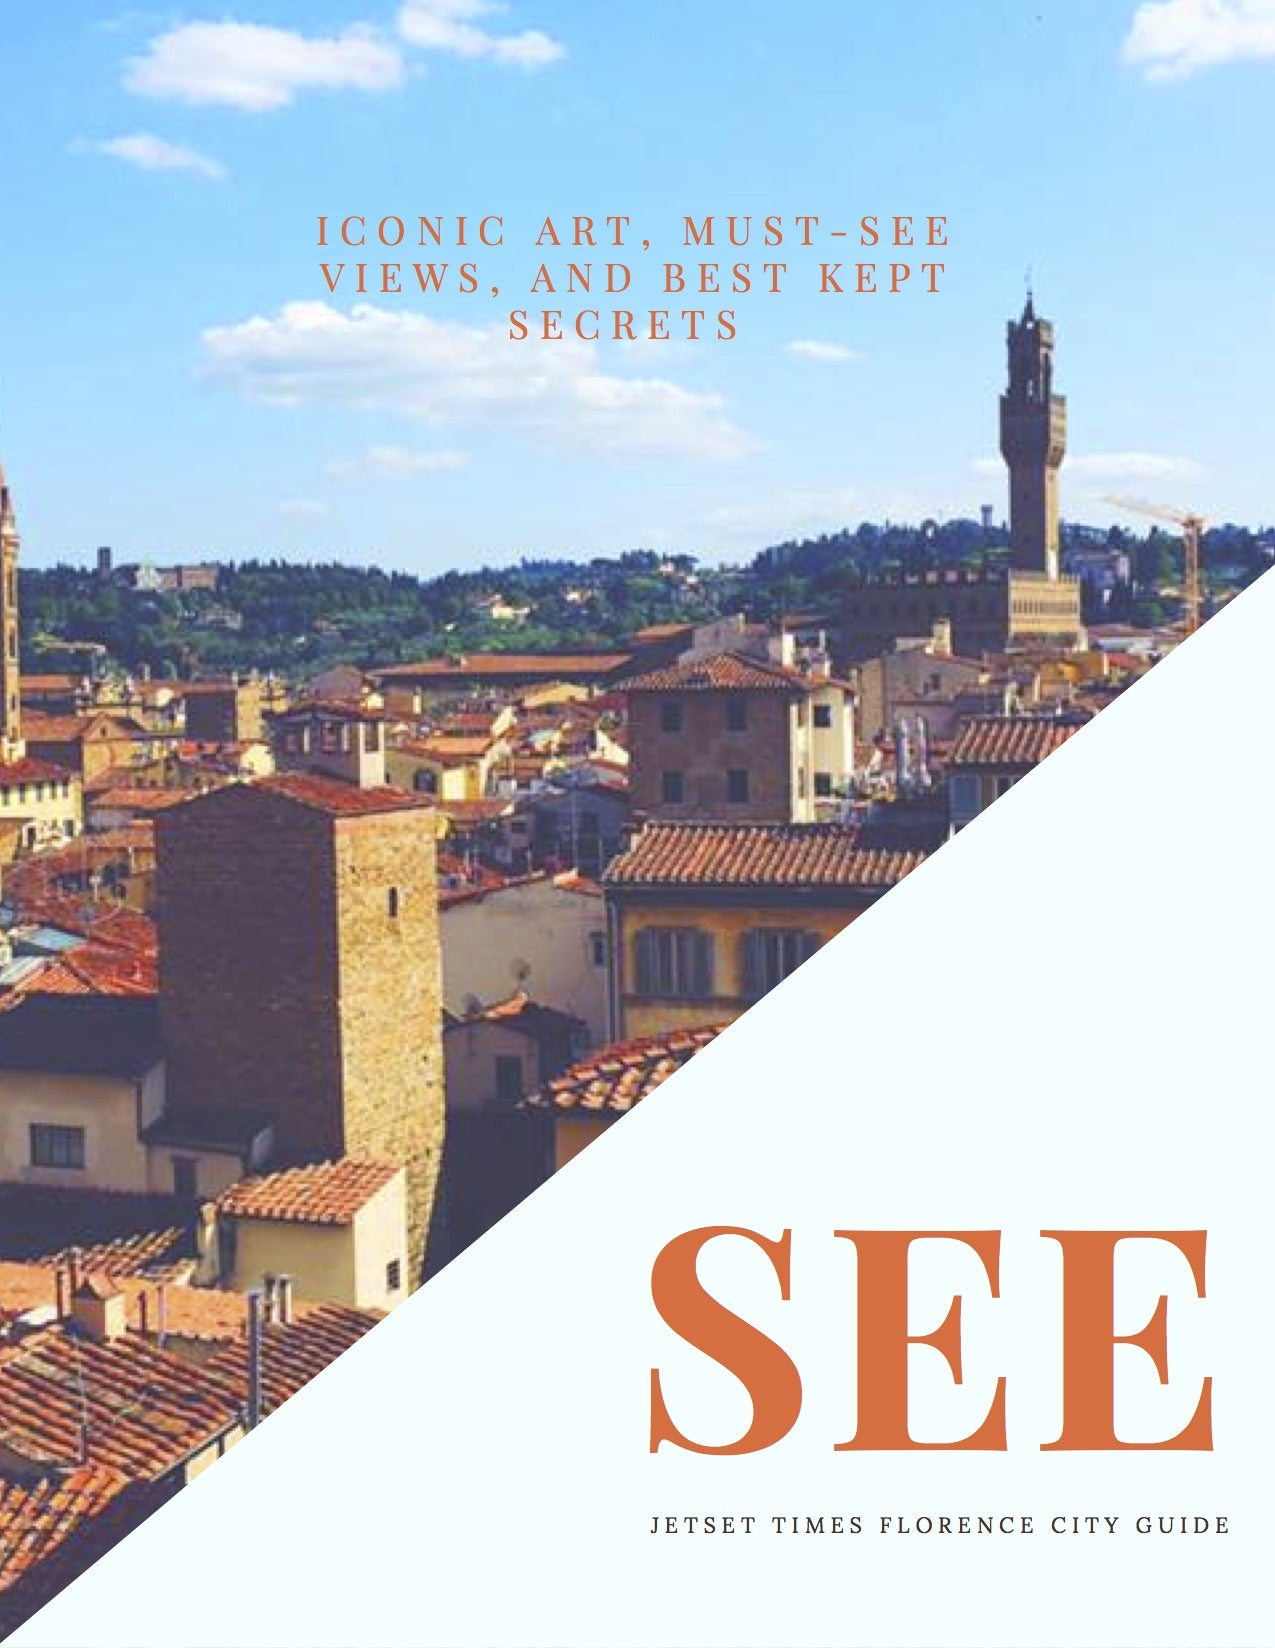 Florence City Guide eBook - Chapter 2 Florence SEE by Jetset Times